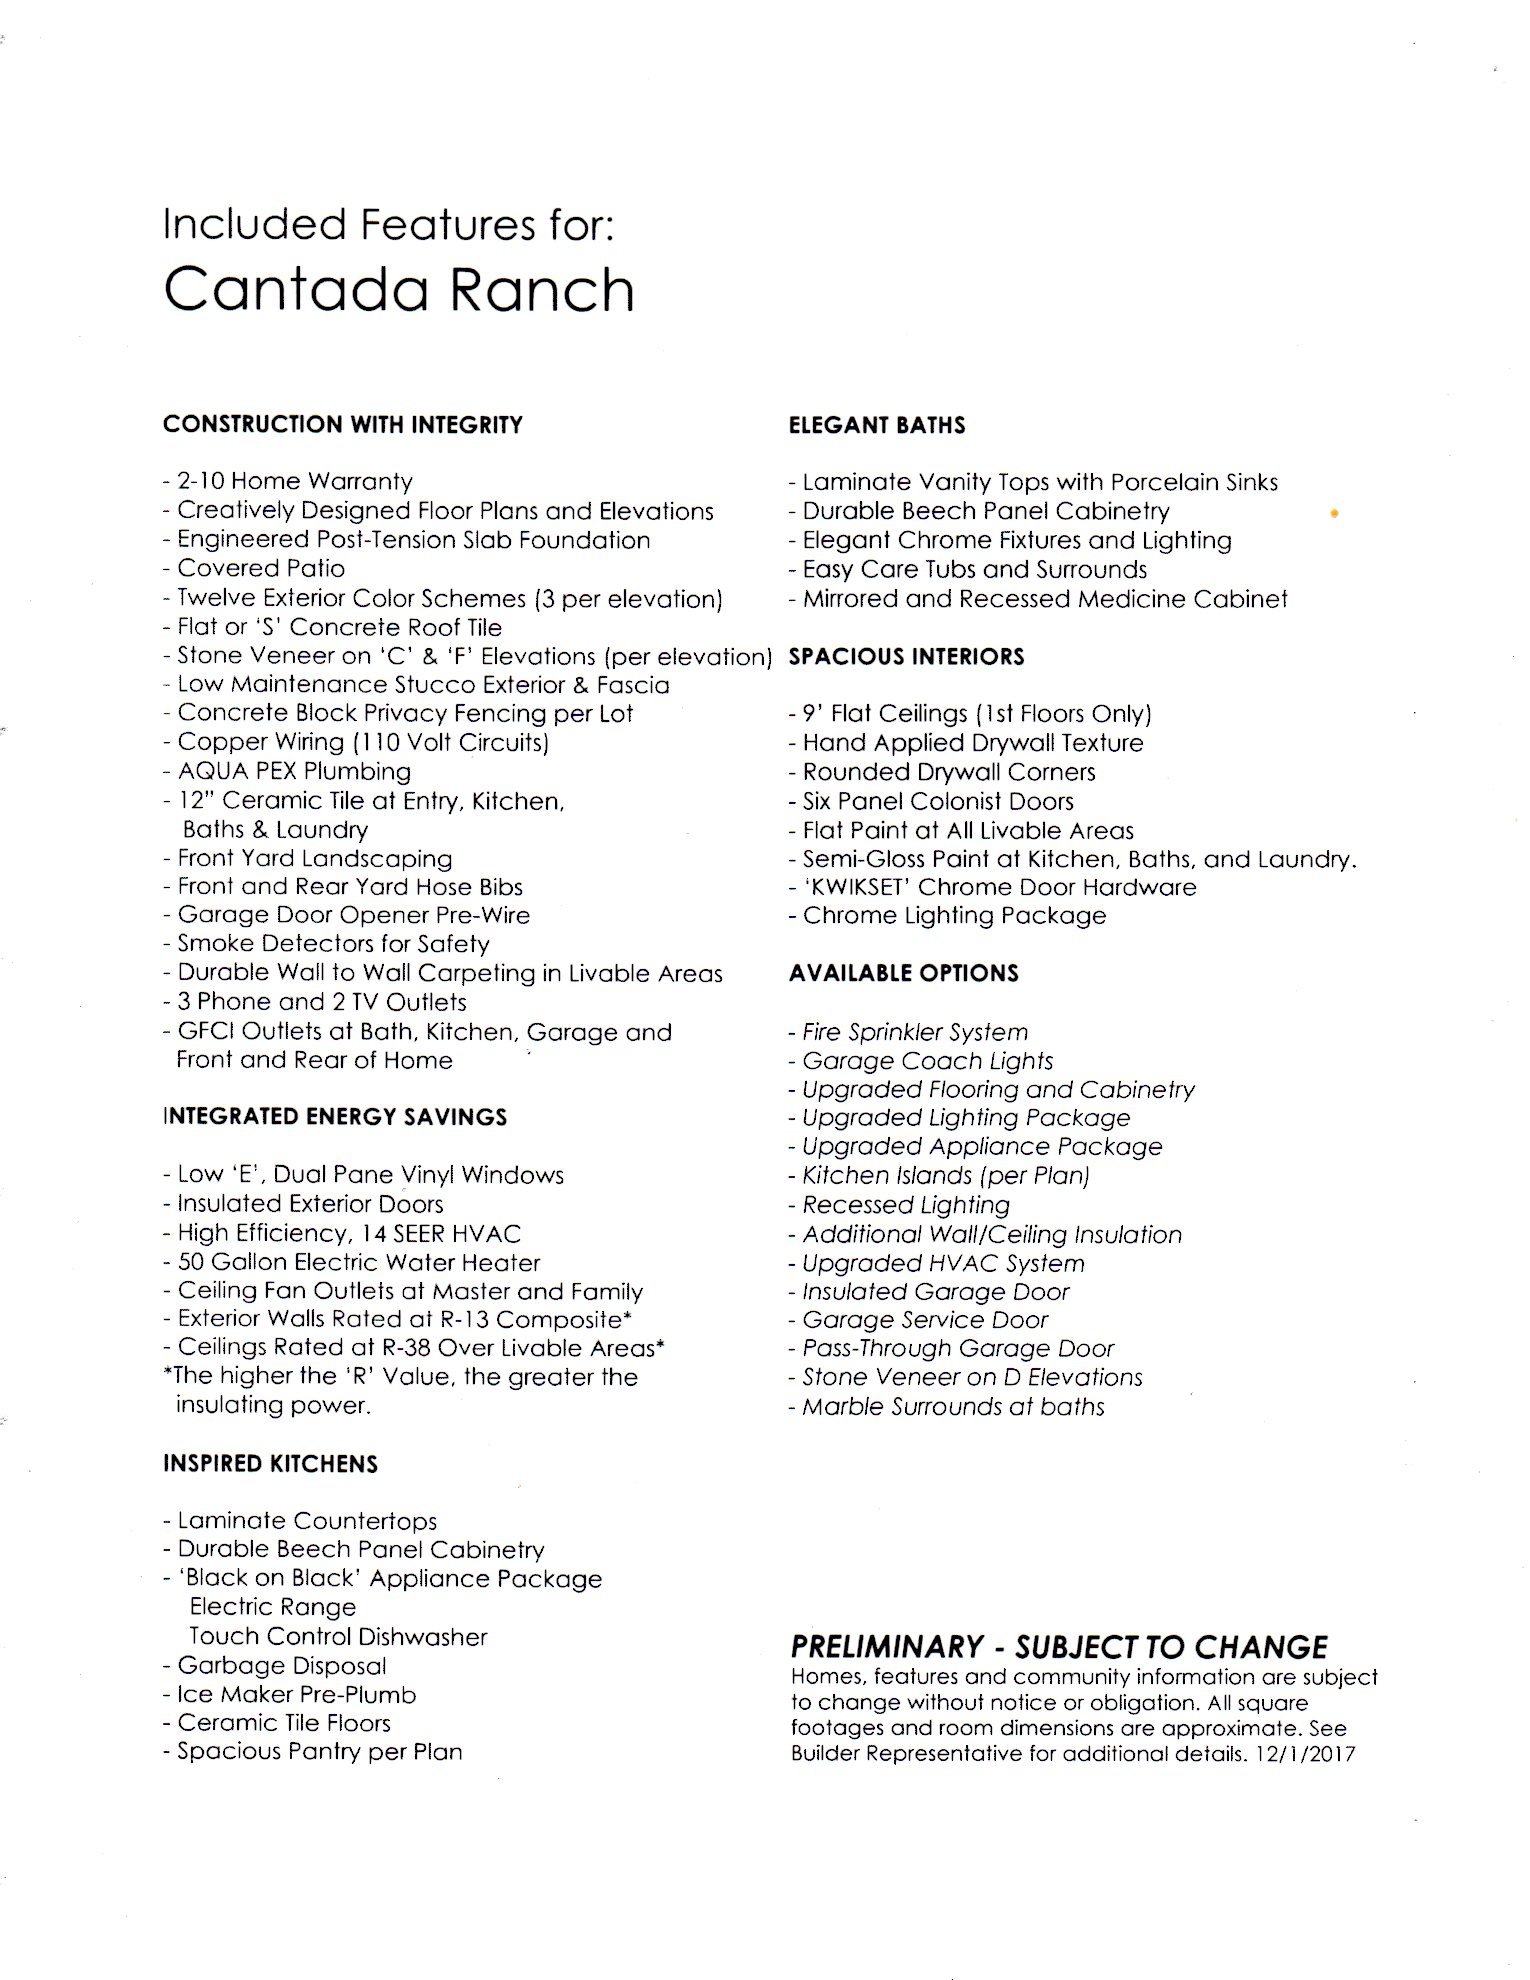 CANTADA RANCH  -STANDARD FEATURES